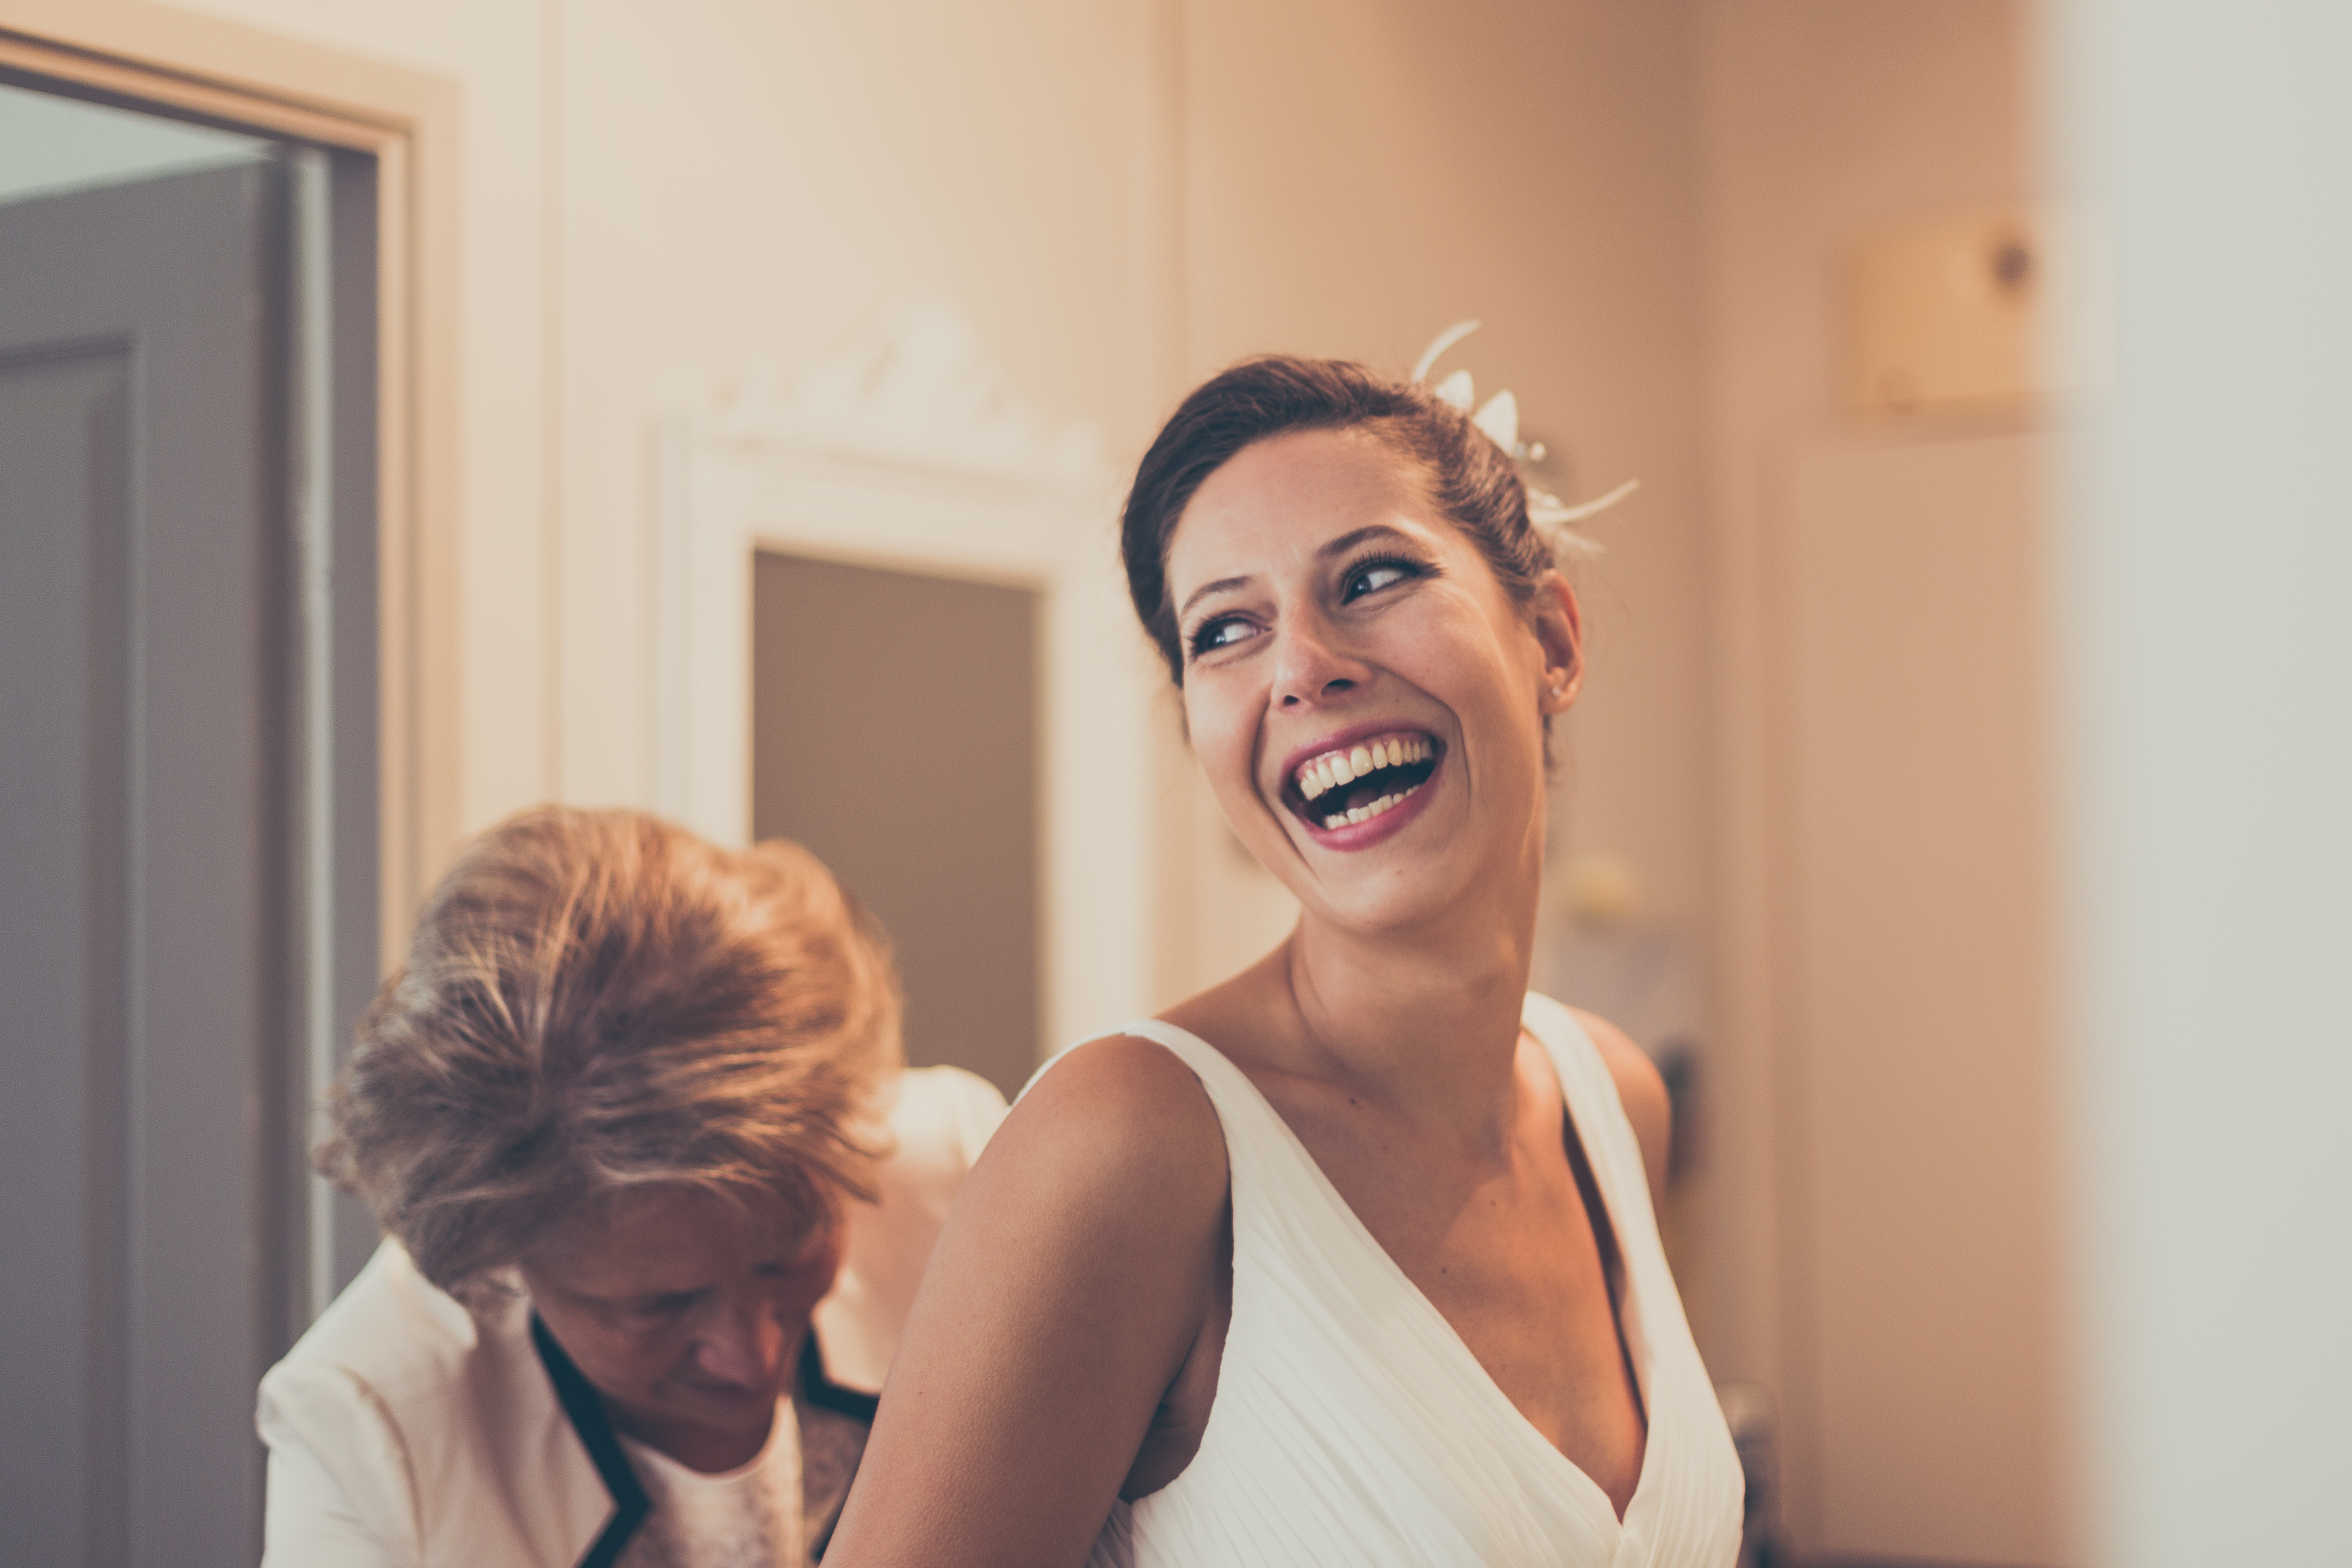 Mariage chic Paris gael genna photo